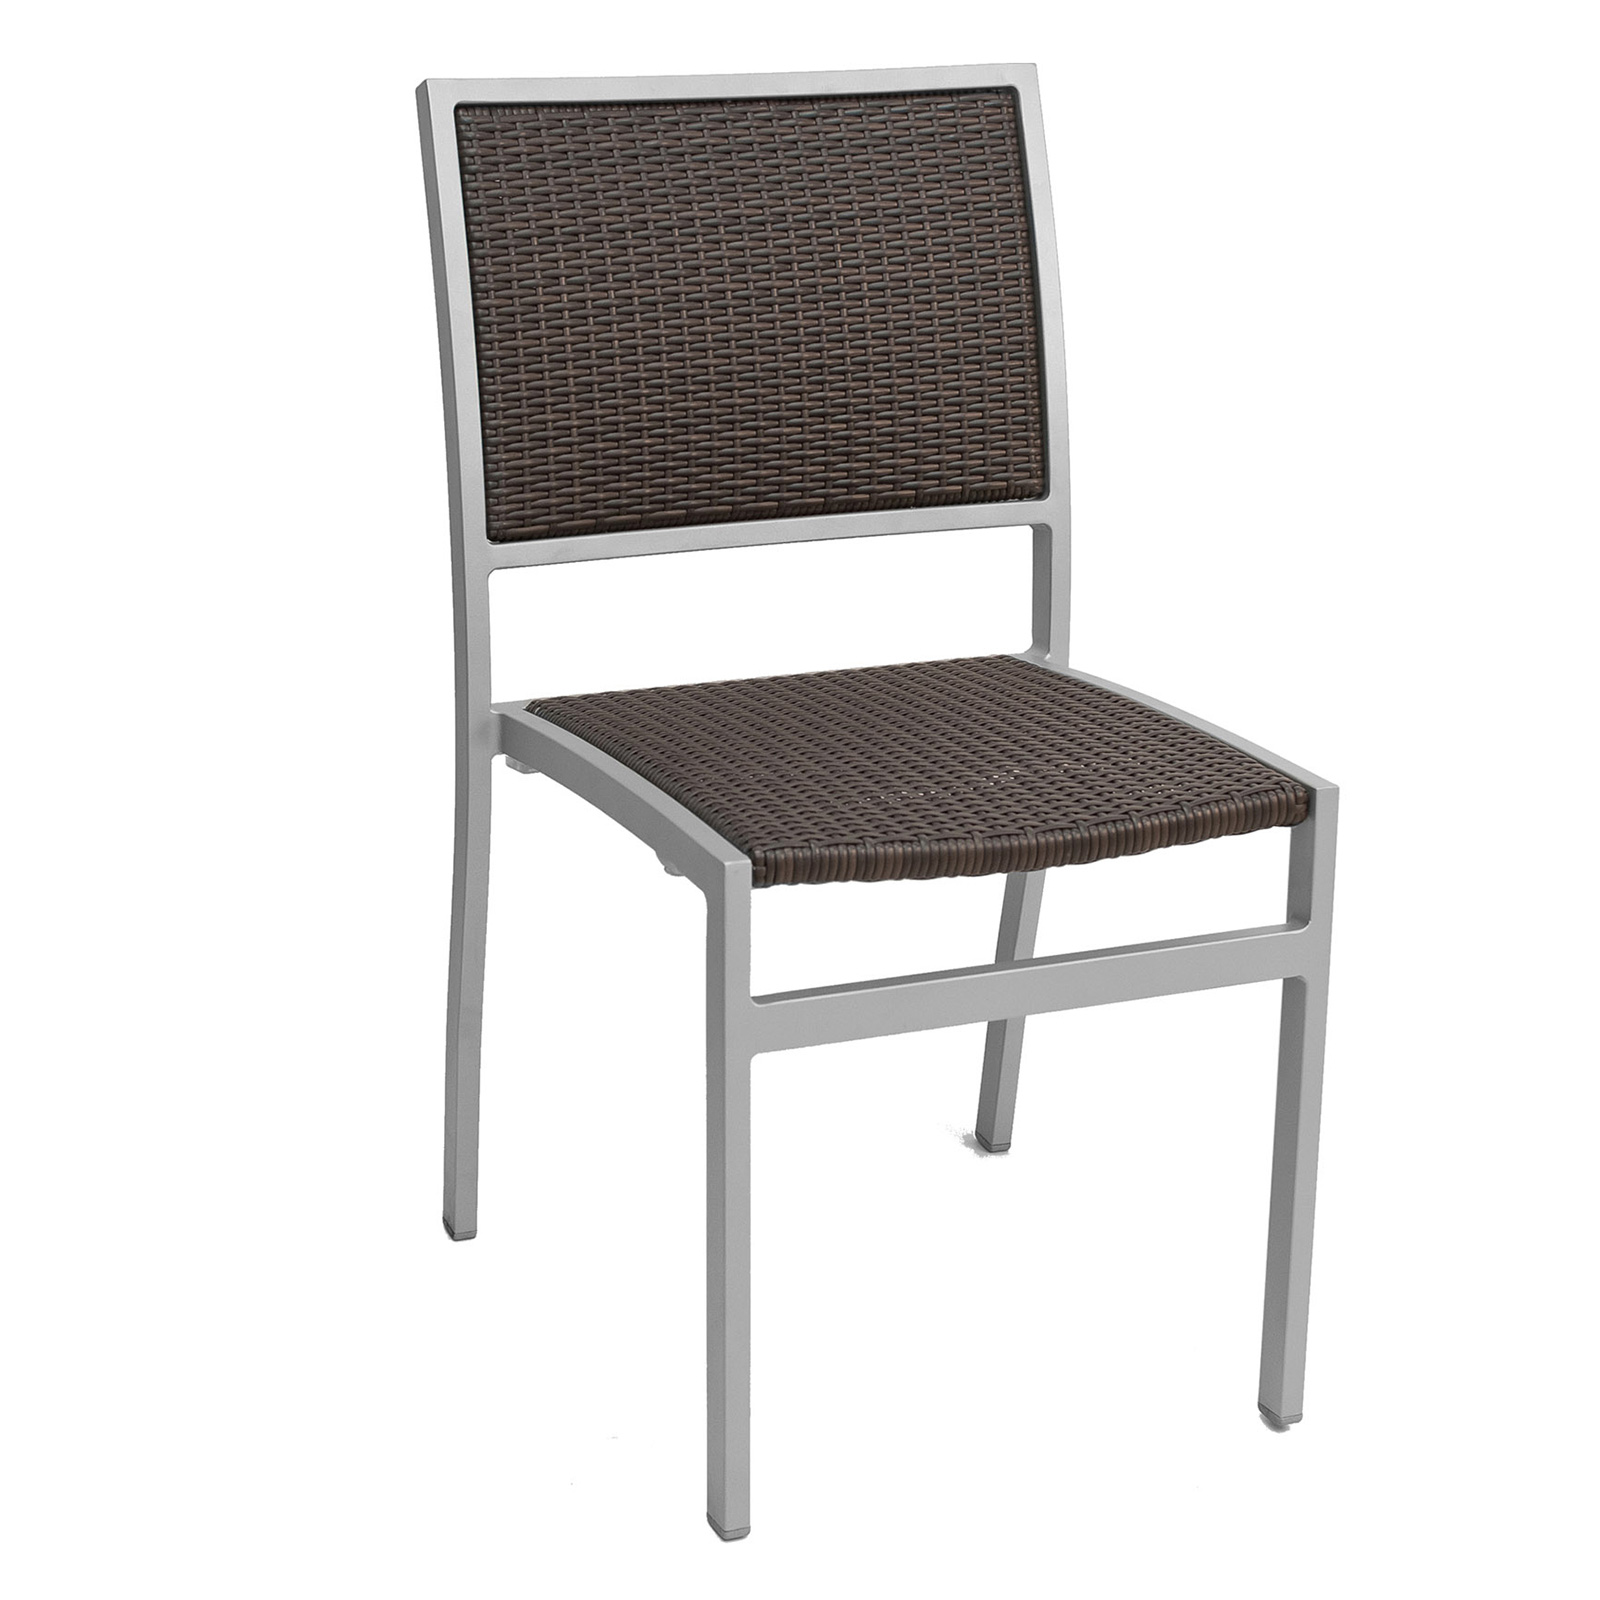 Florida Seating AL-5625-0 chair, side, stacking, outdoor